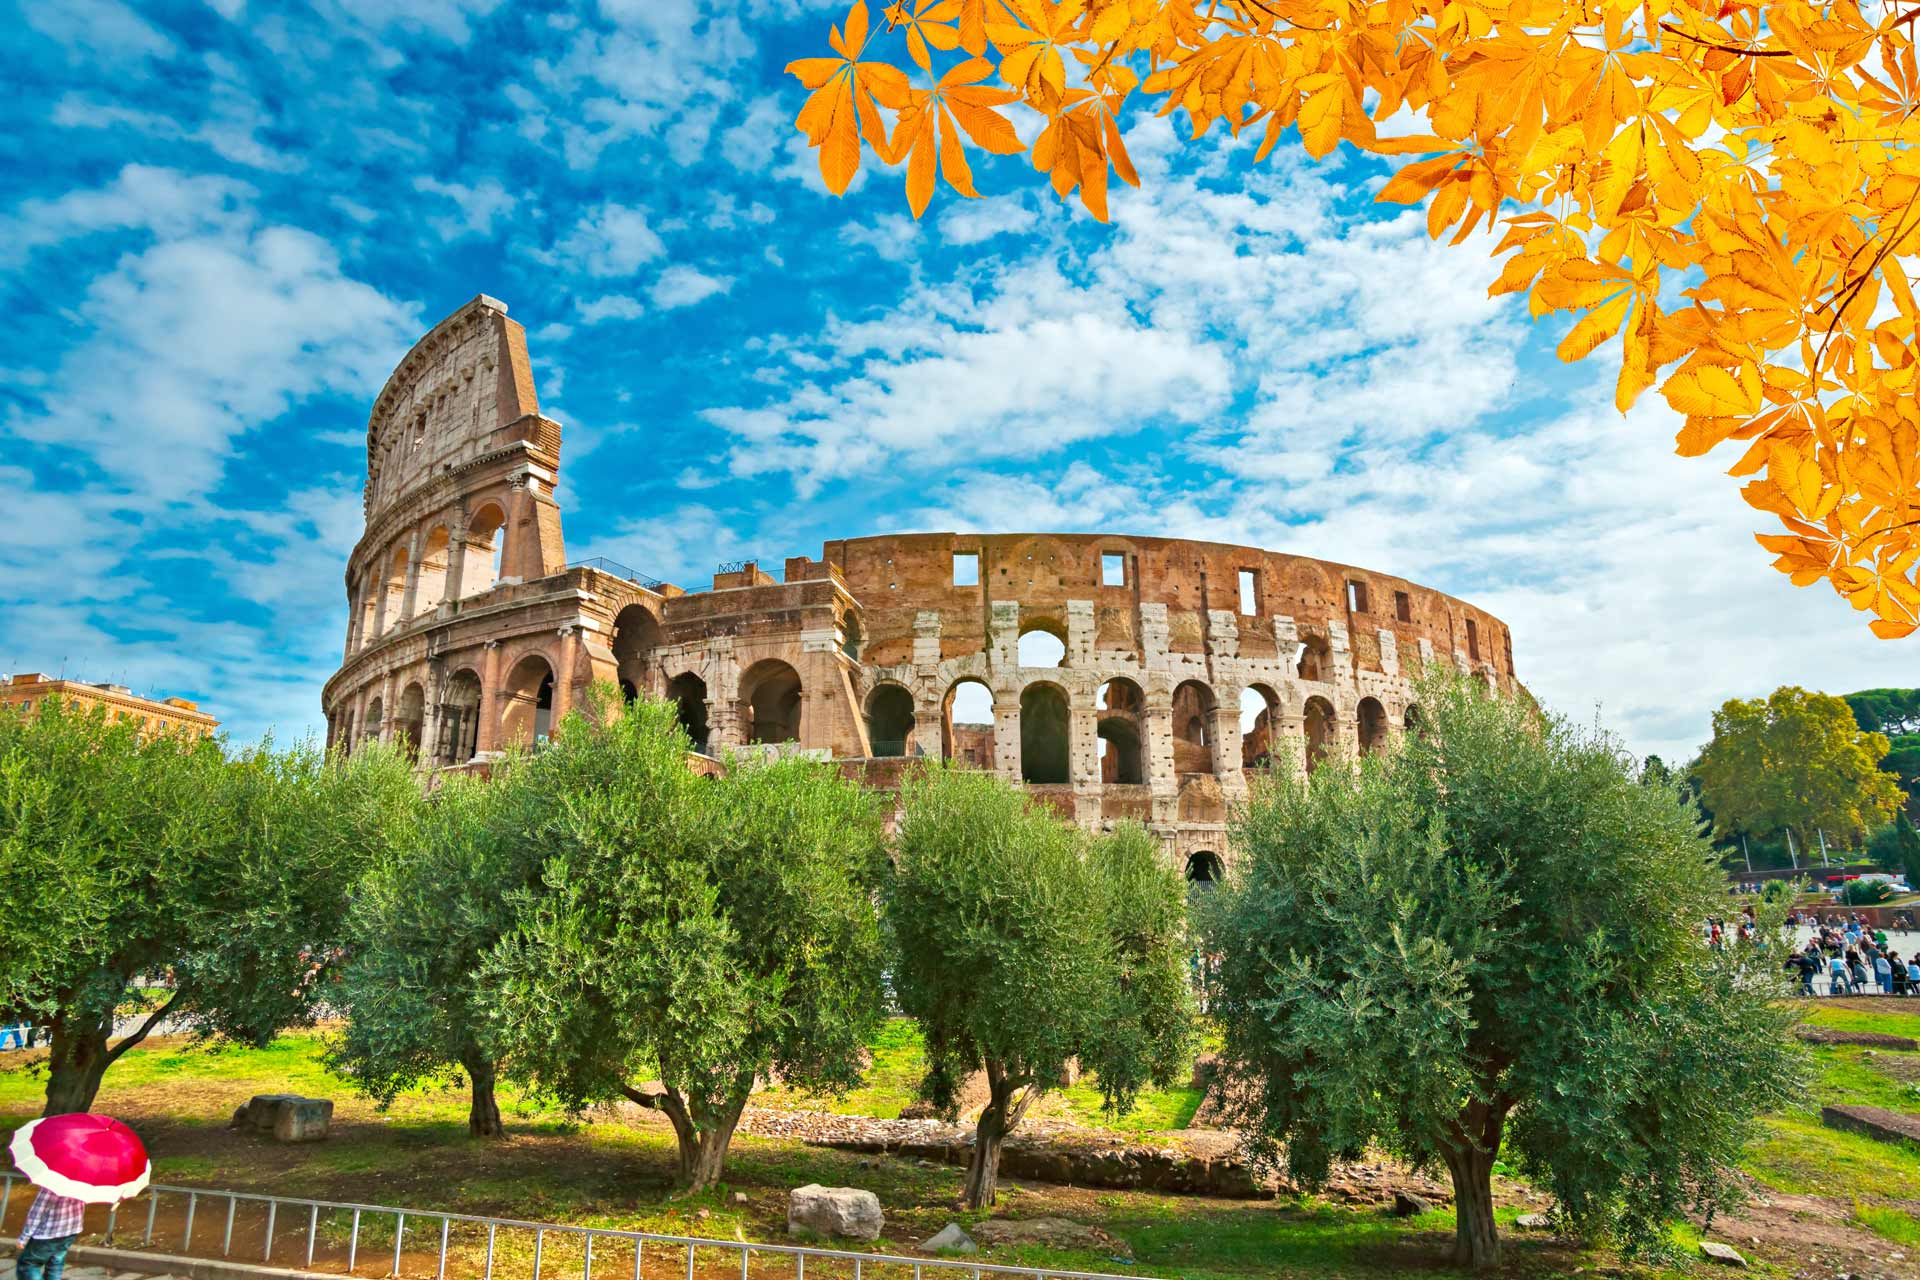 Rome Tour Tickets Colosseum Roman Forum and Palatine Hill Skip the Line Audio Video Guide